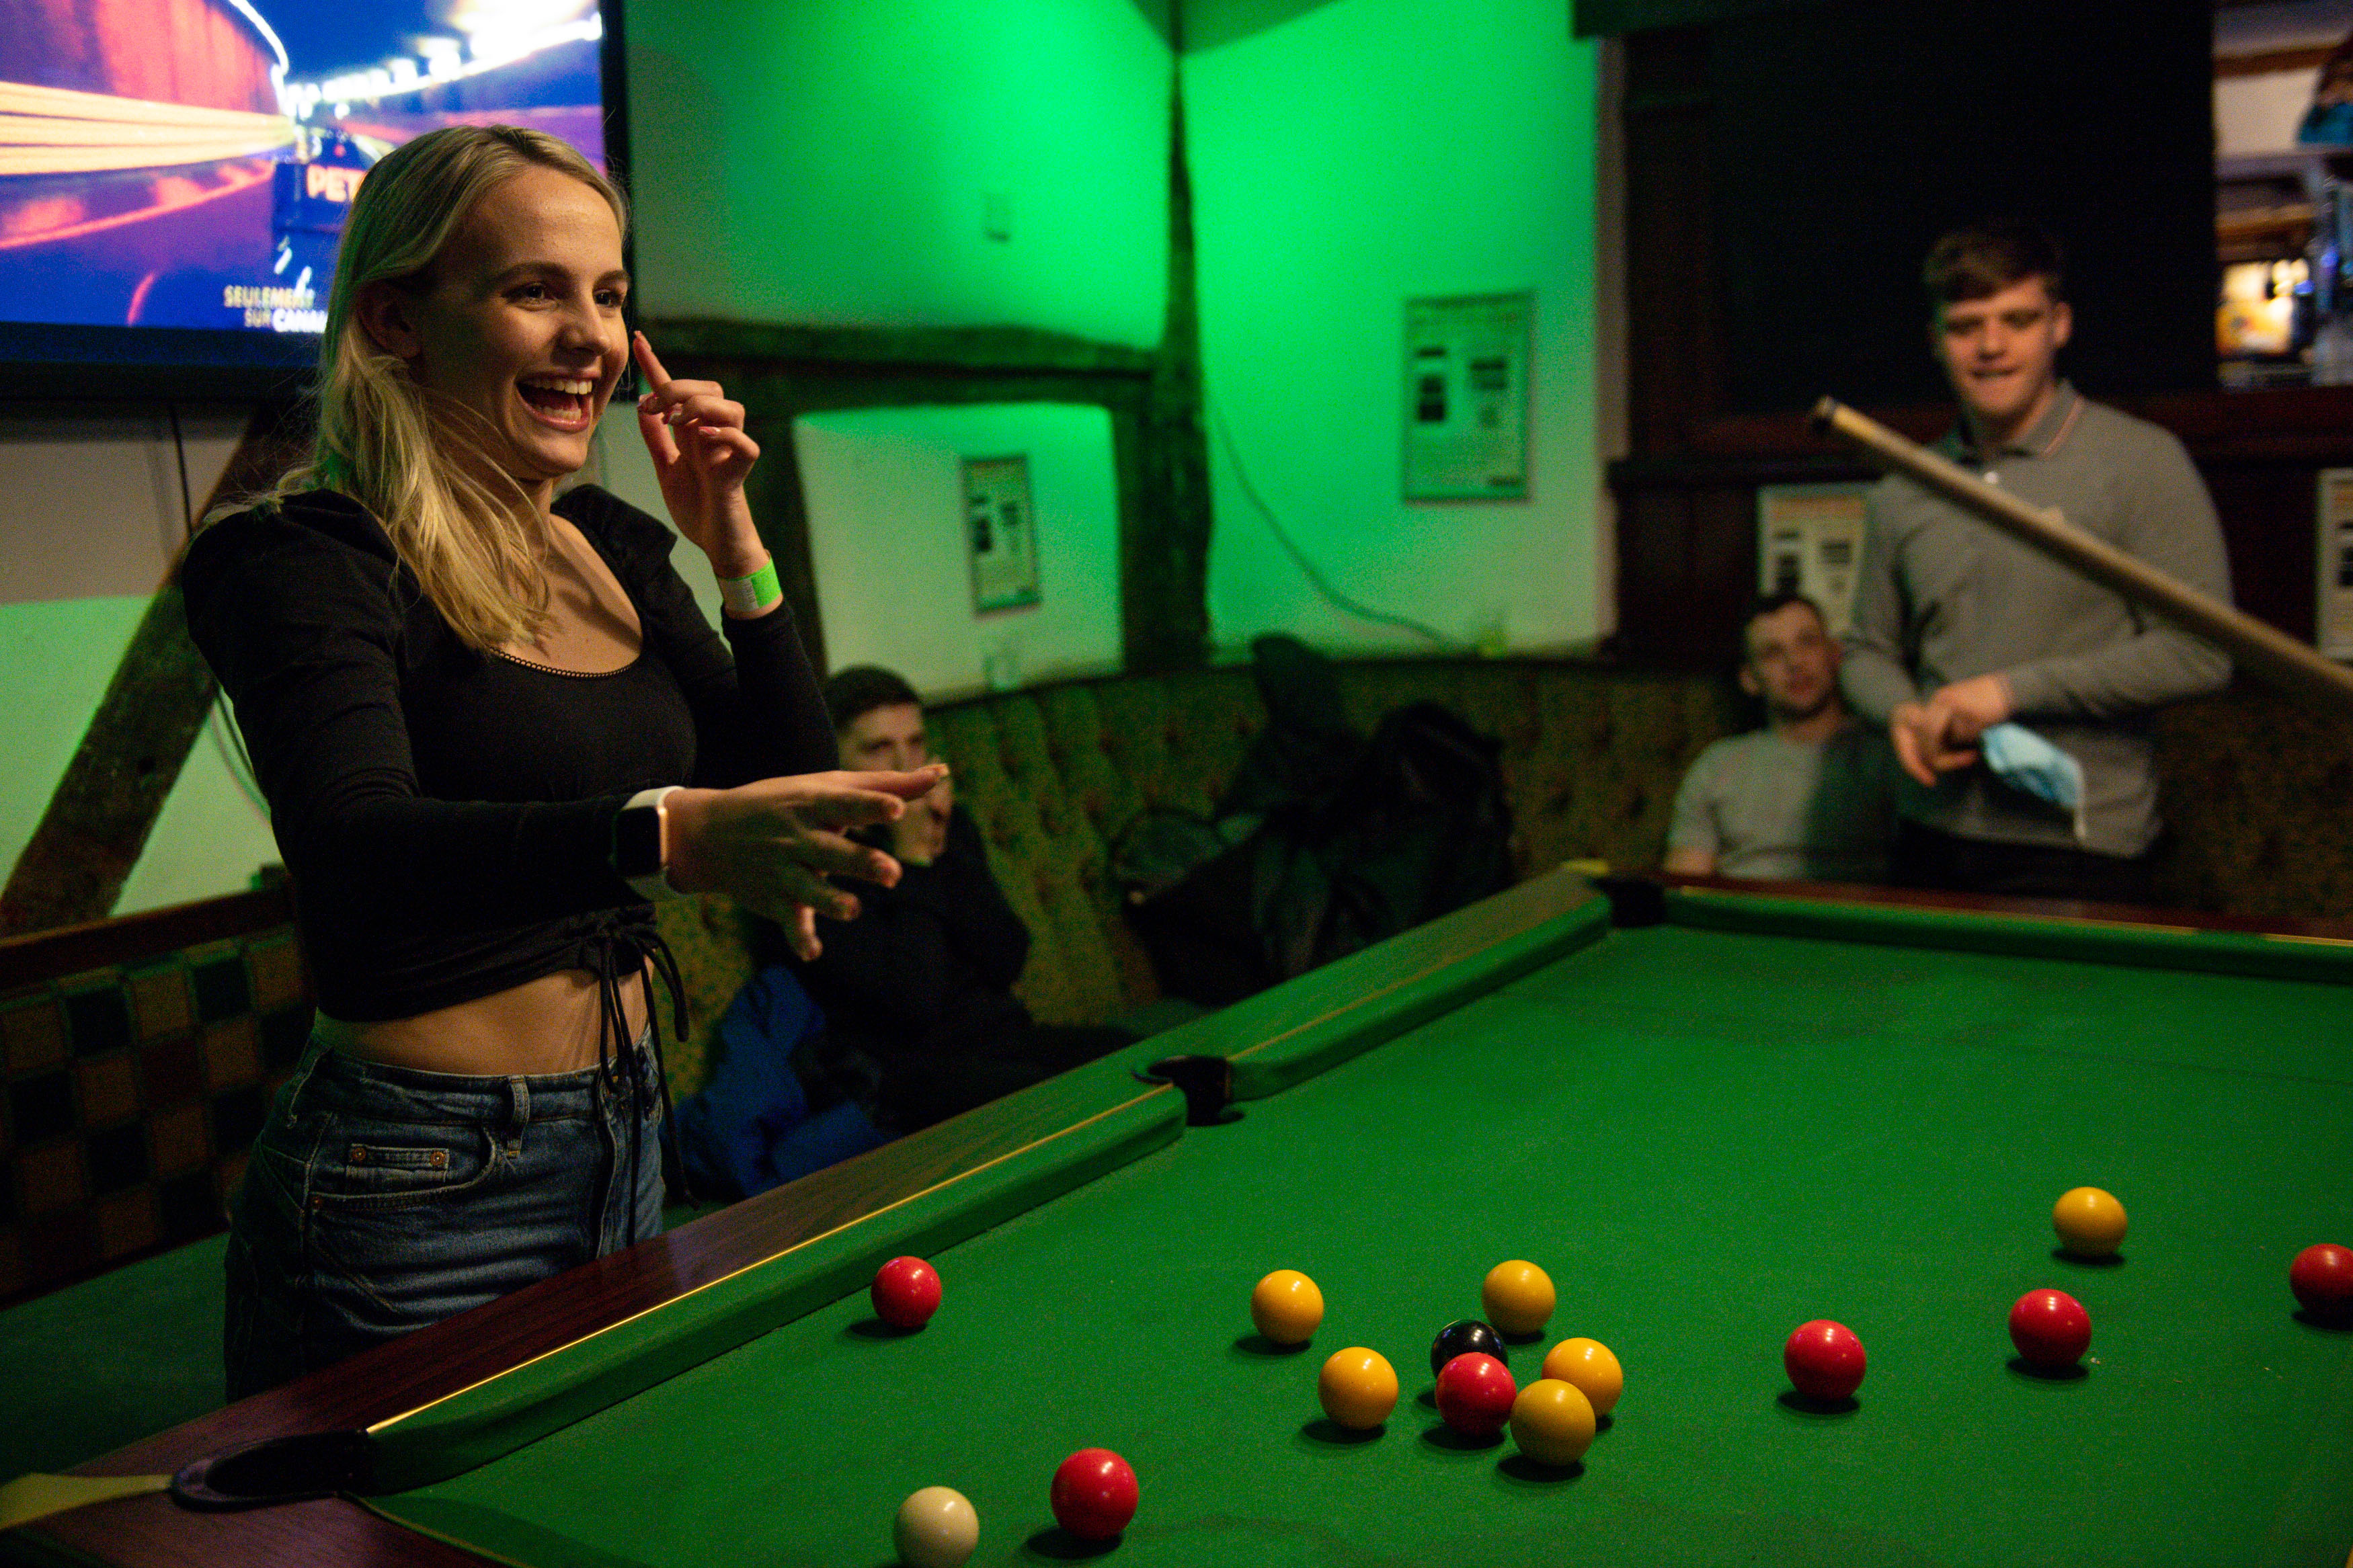 <p>Customers enjoy a game of pool at the The Oak Inn in Coventry, West Midlands, as indoor hospitality and entertainment venues reopen to the public following the further easing of lockdown restrictions in England. Picture date: Monday May 17, 2021.</p>